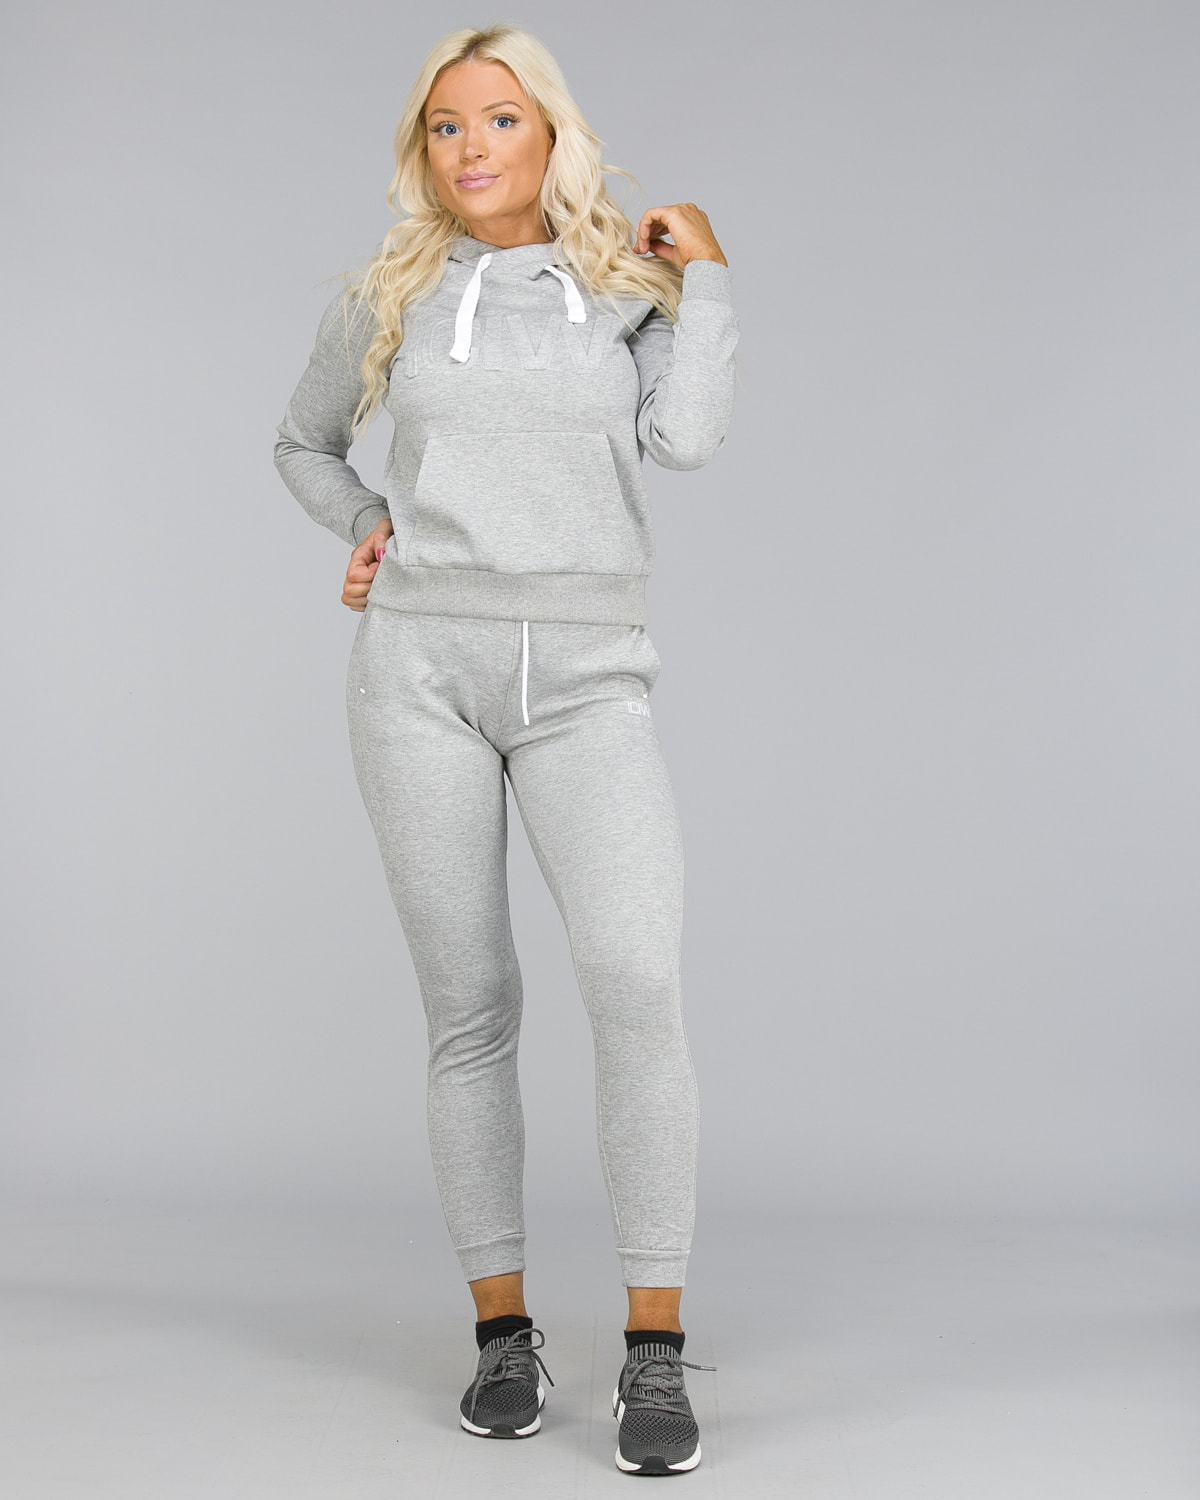 ICANIWILL – Sweat Pants – Light Grey